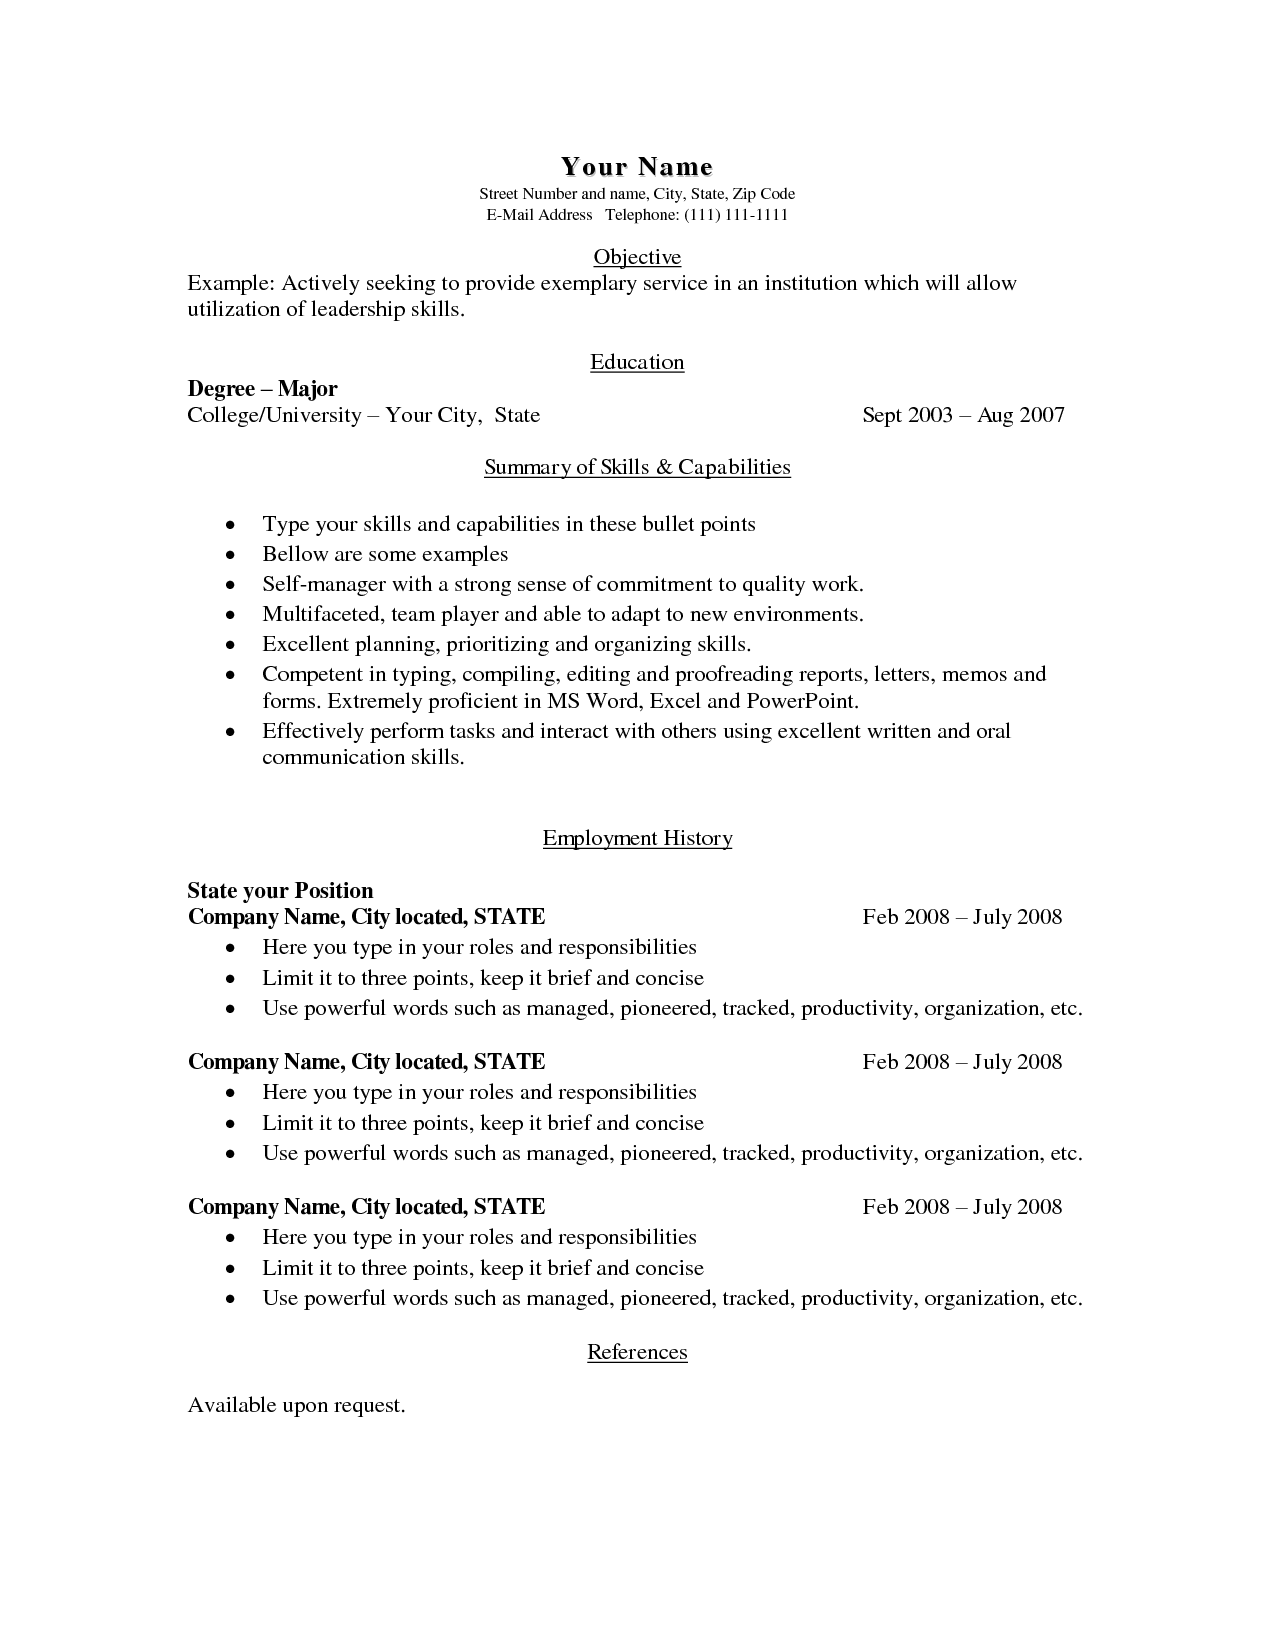 Administrative assistant Resume Summary New Resume Summary